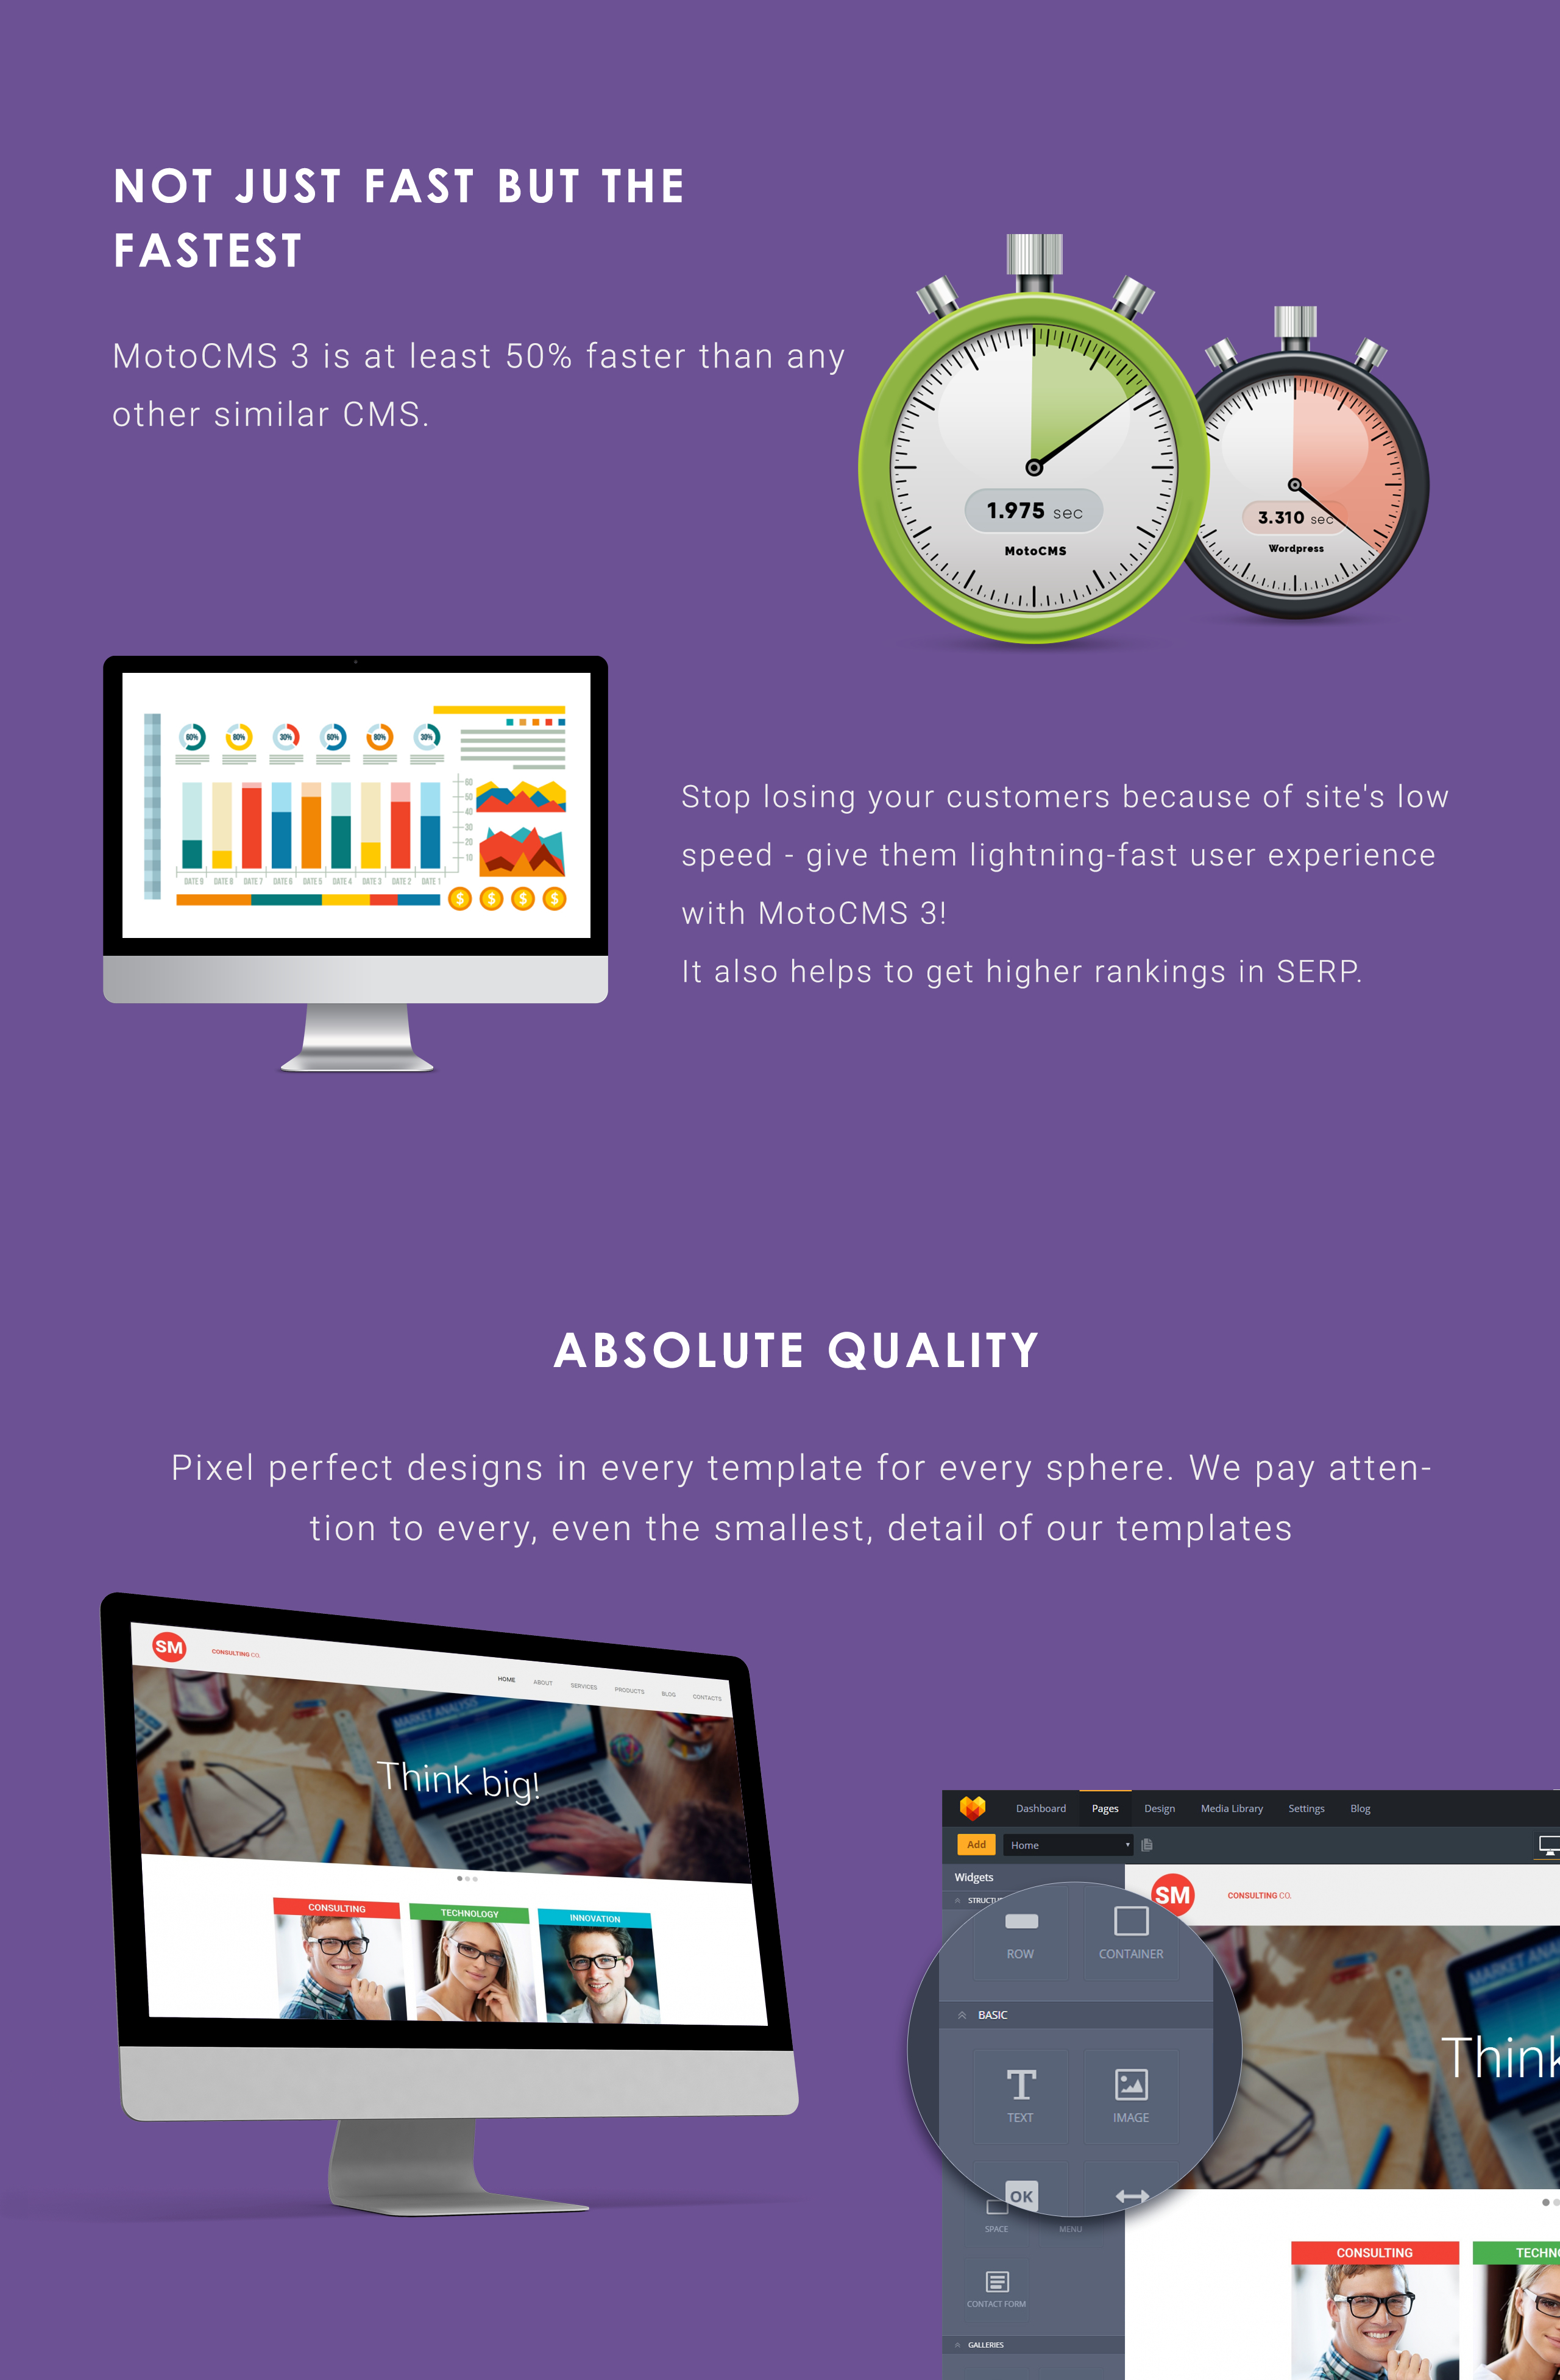 Fantastic 10 Best Resume Designs Small 10 Best Resume Writers Regular 15 Year Old Resume Example 16th Birthday Invitation Templates Youthful 18 Year Old Resumes Coloured2 Page Resume Design Consulting Responsive Moto CMS 3 Template #58430